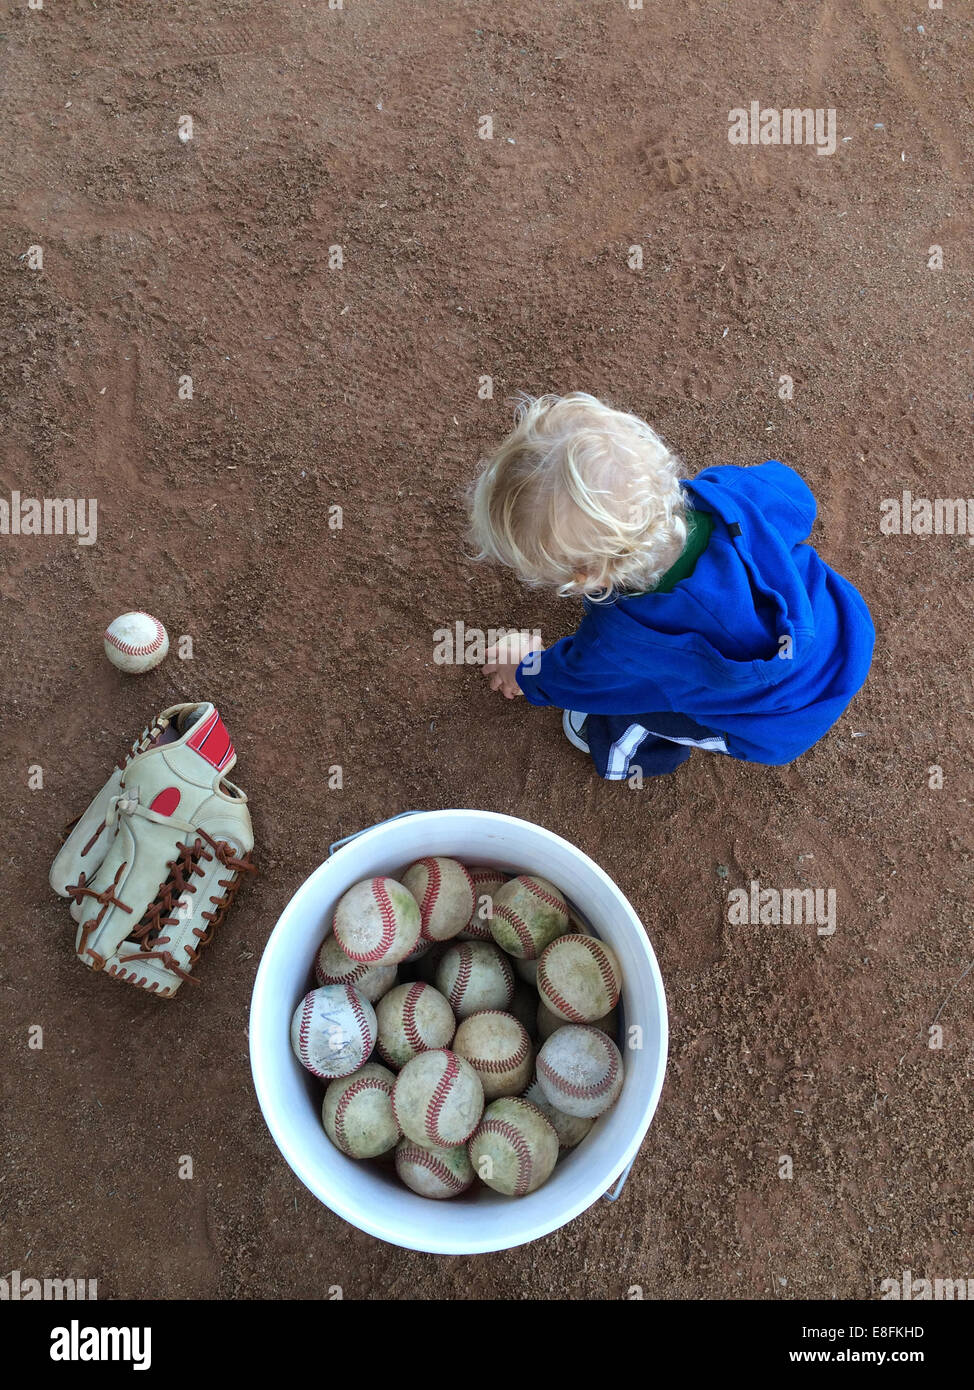 Boy collecting baseball balls in a ball bucket - Stock Image